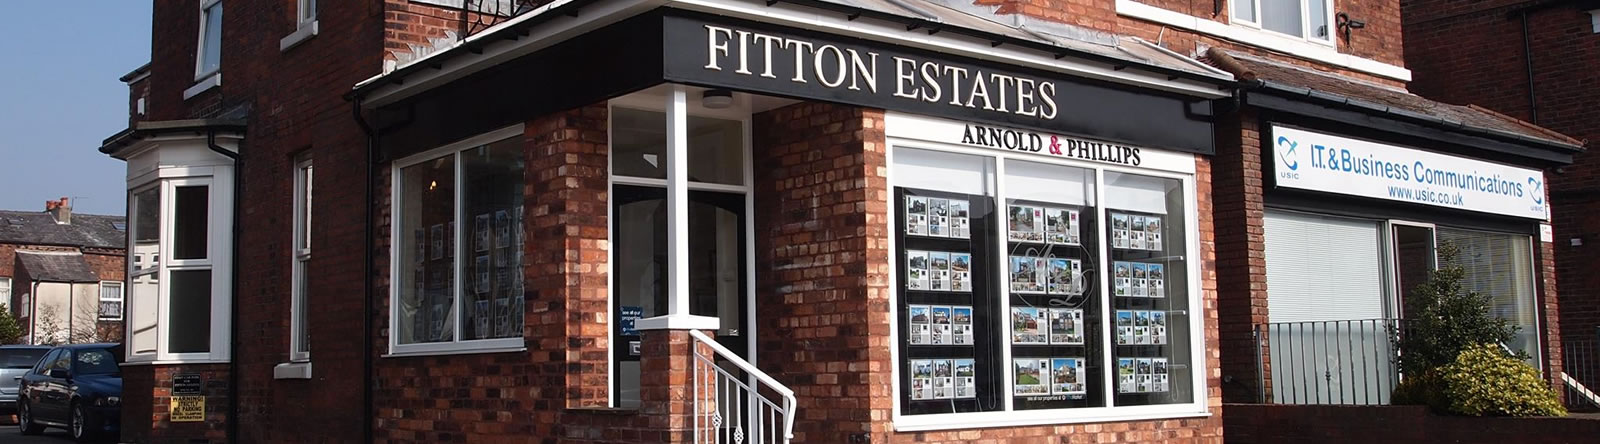 Fitton Estates